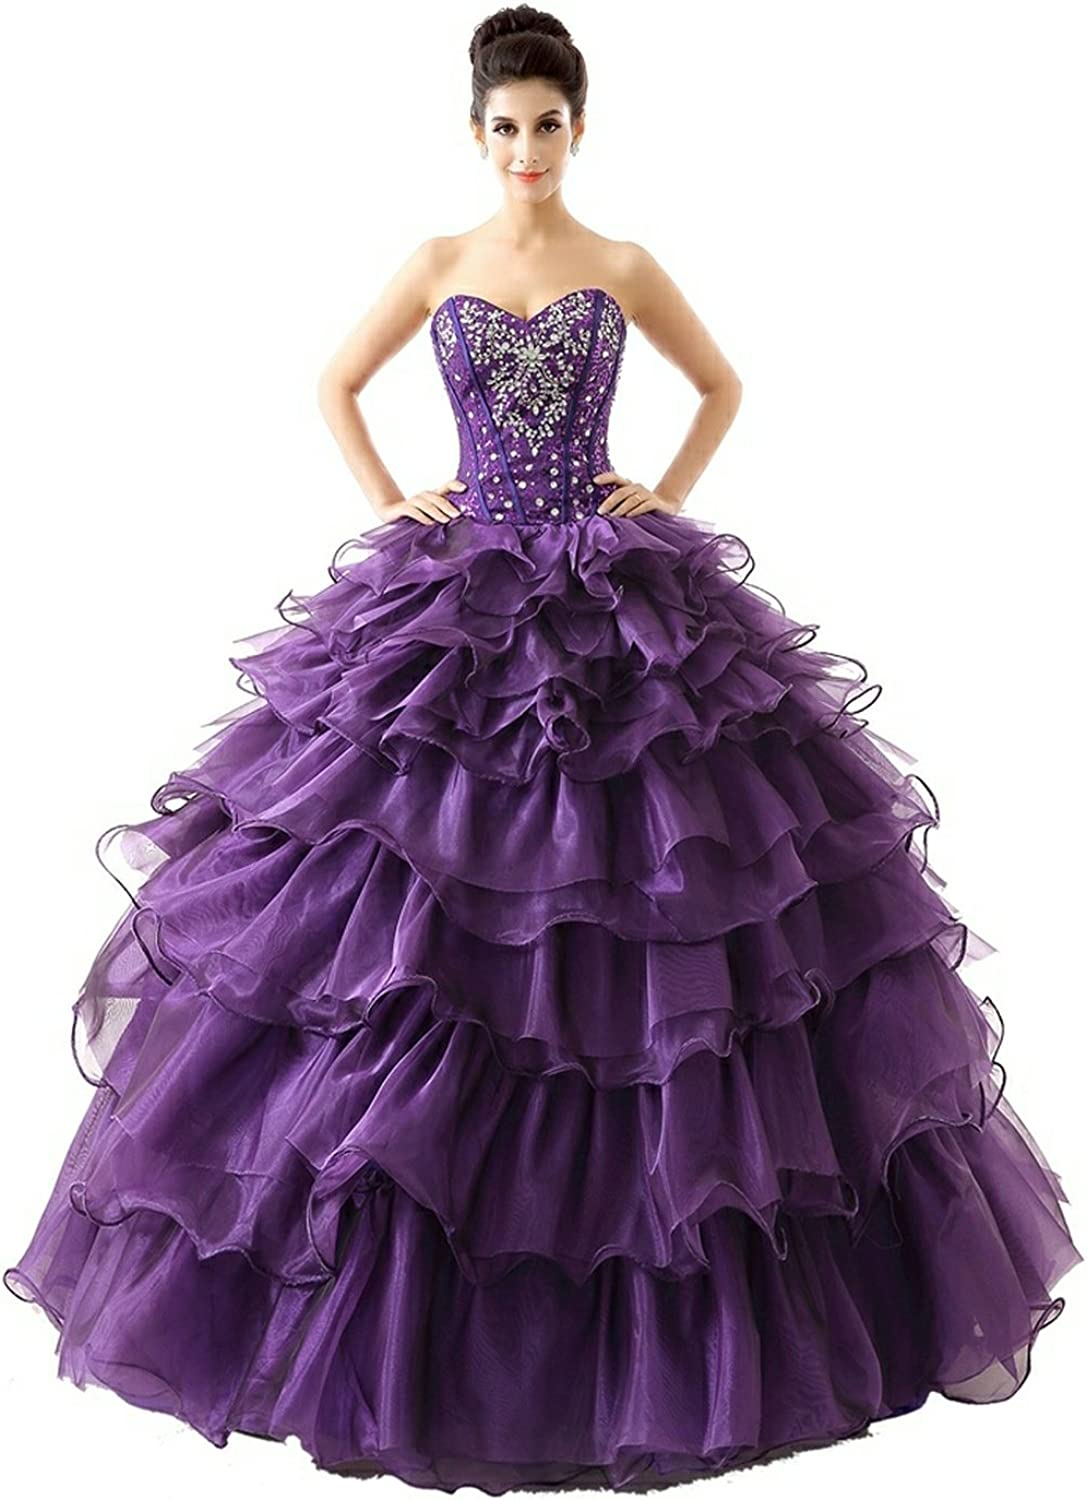 Lavaring Women's Organza Sweetheart Prom Dress Ball Gown with Ruffles